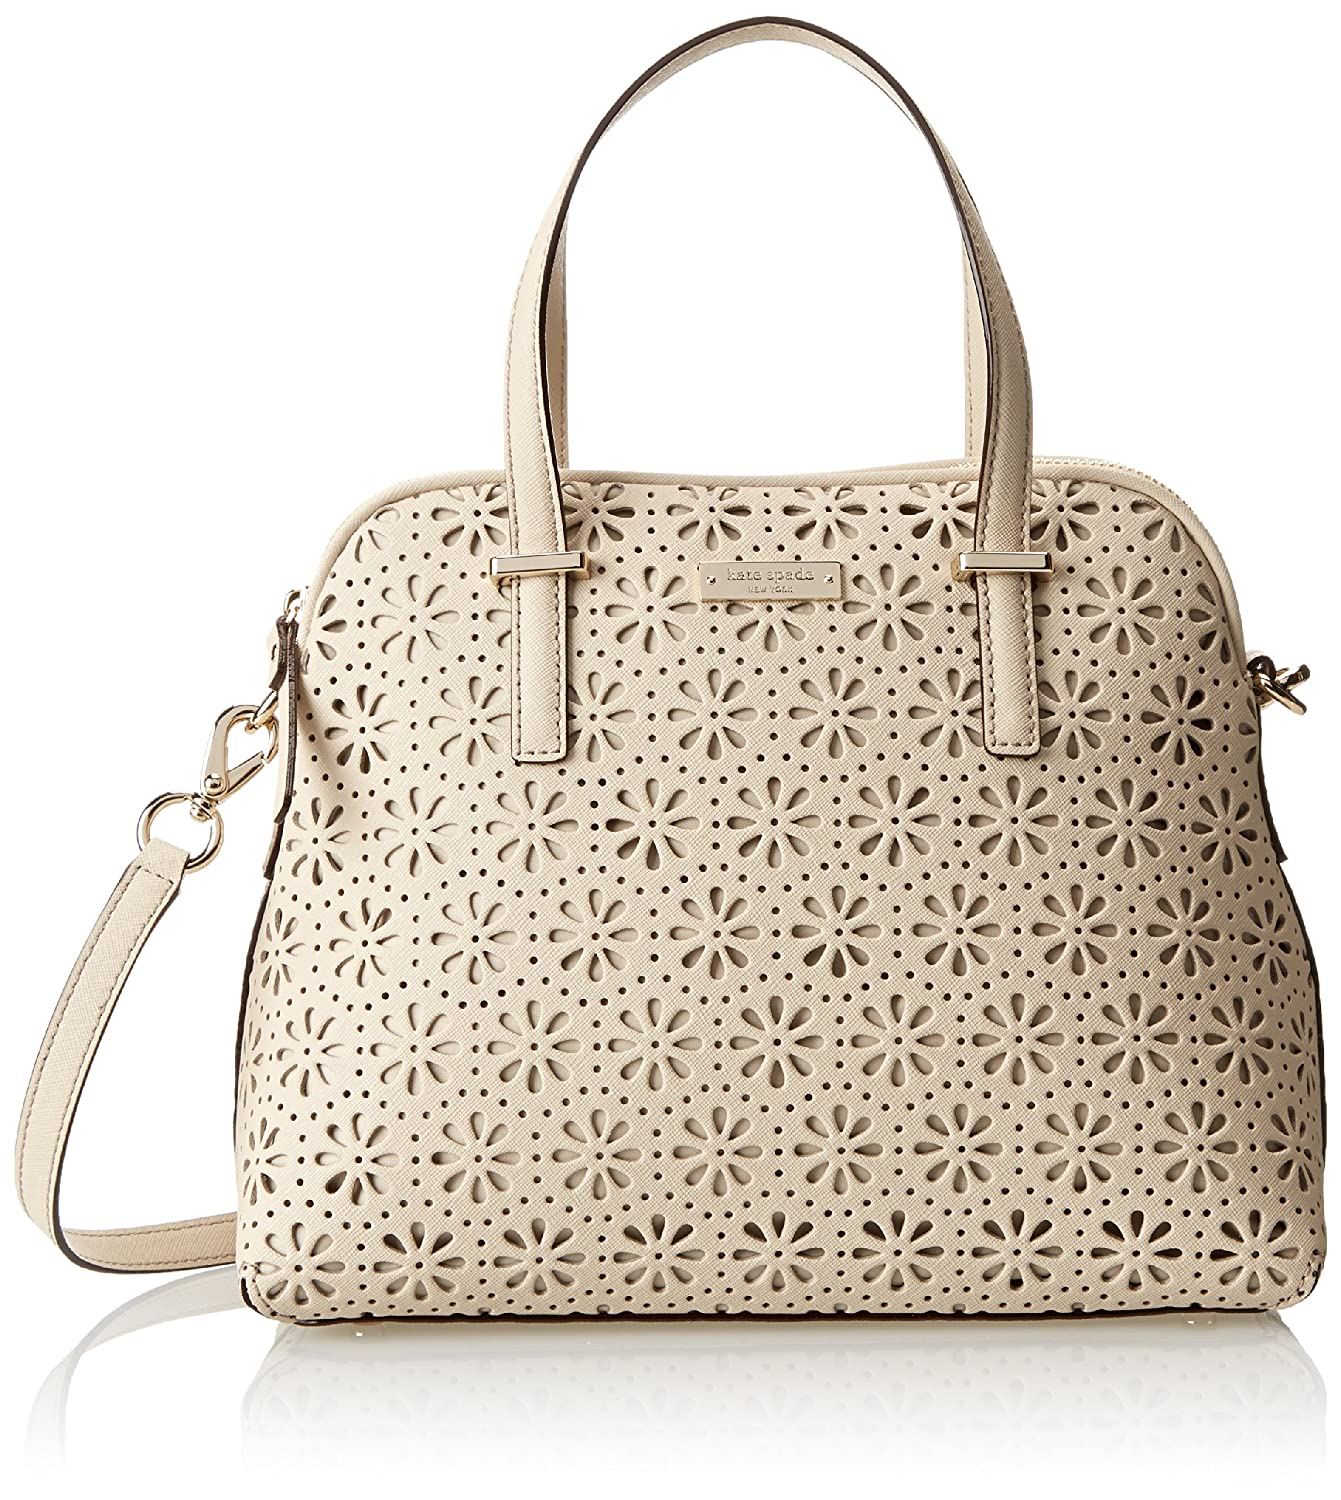 kate spade new york Cedar Street Perforated Maise Cross Body Bag, Crema De Vie, One Size